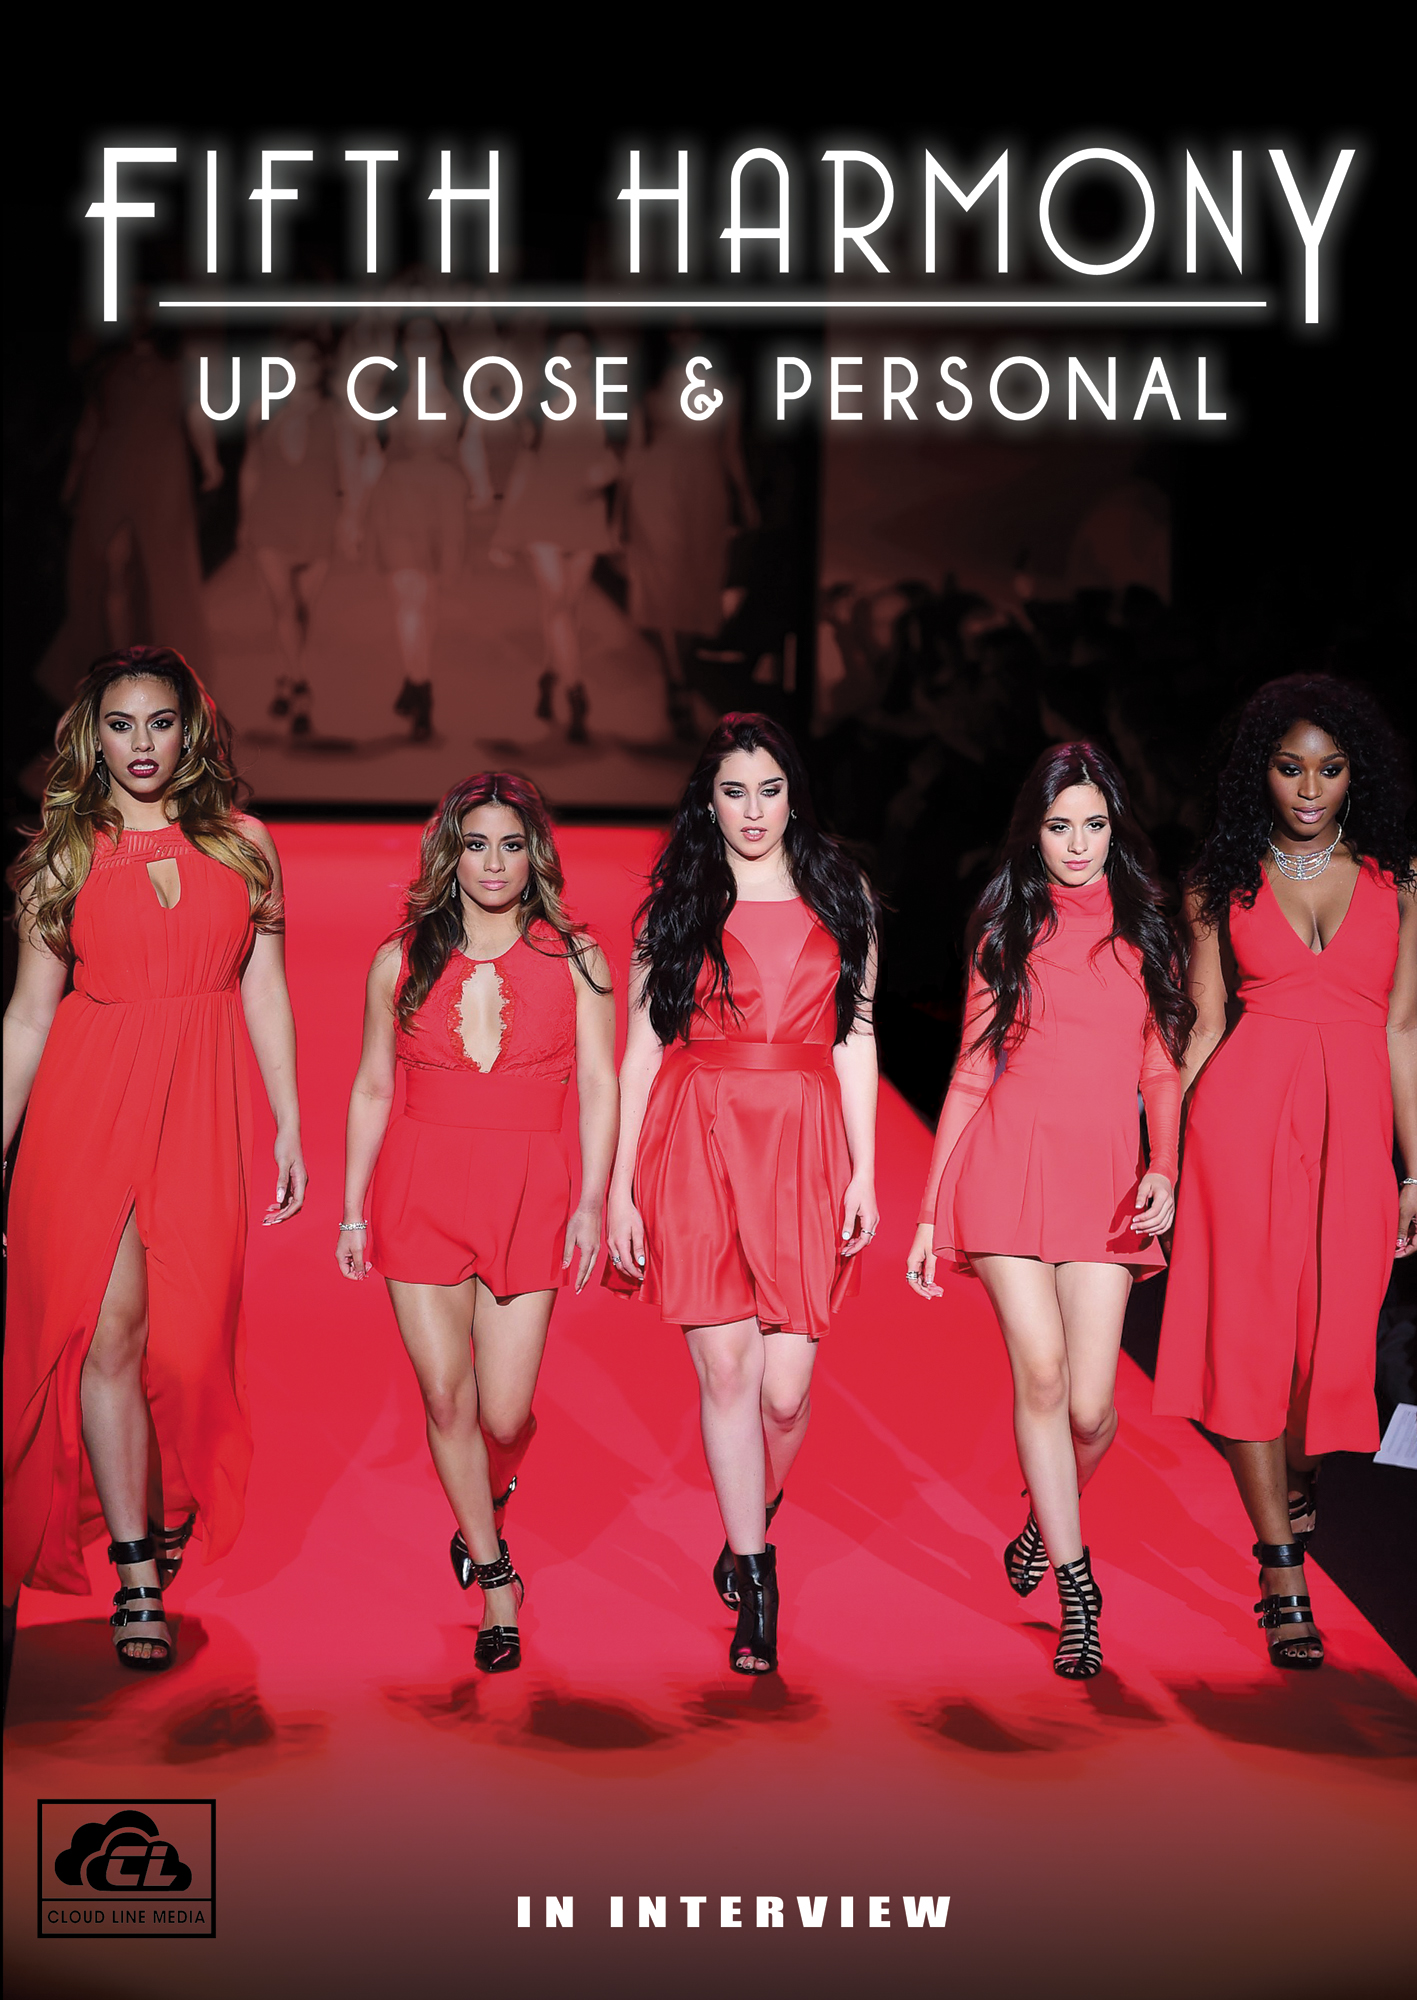 Fifth Harmony: Up Close & Personal